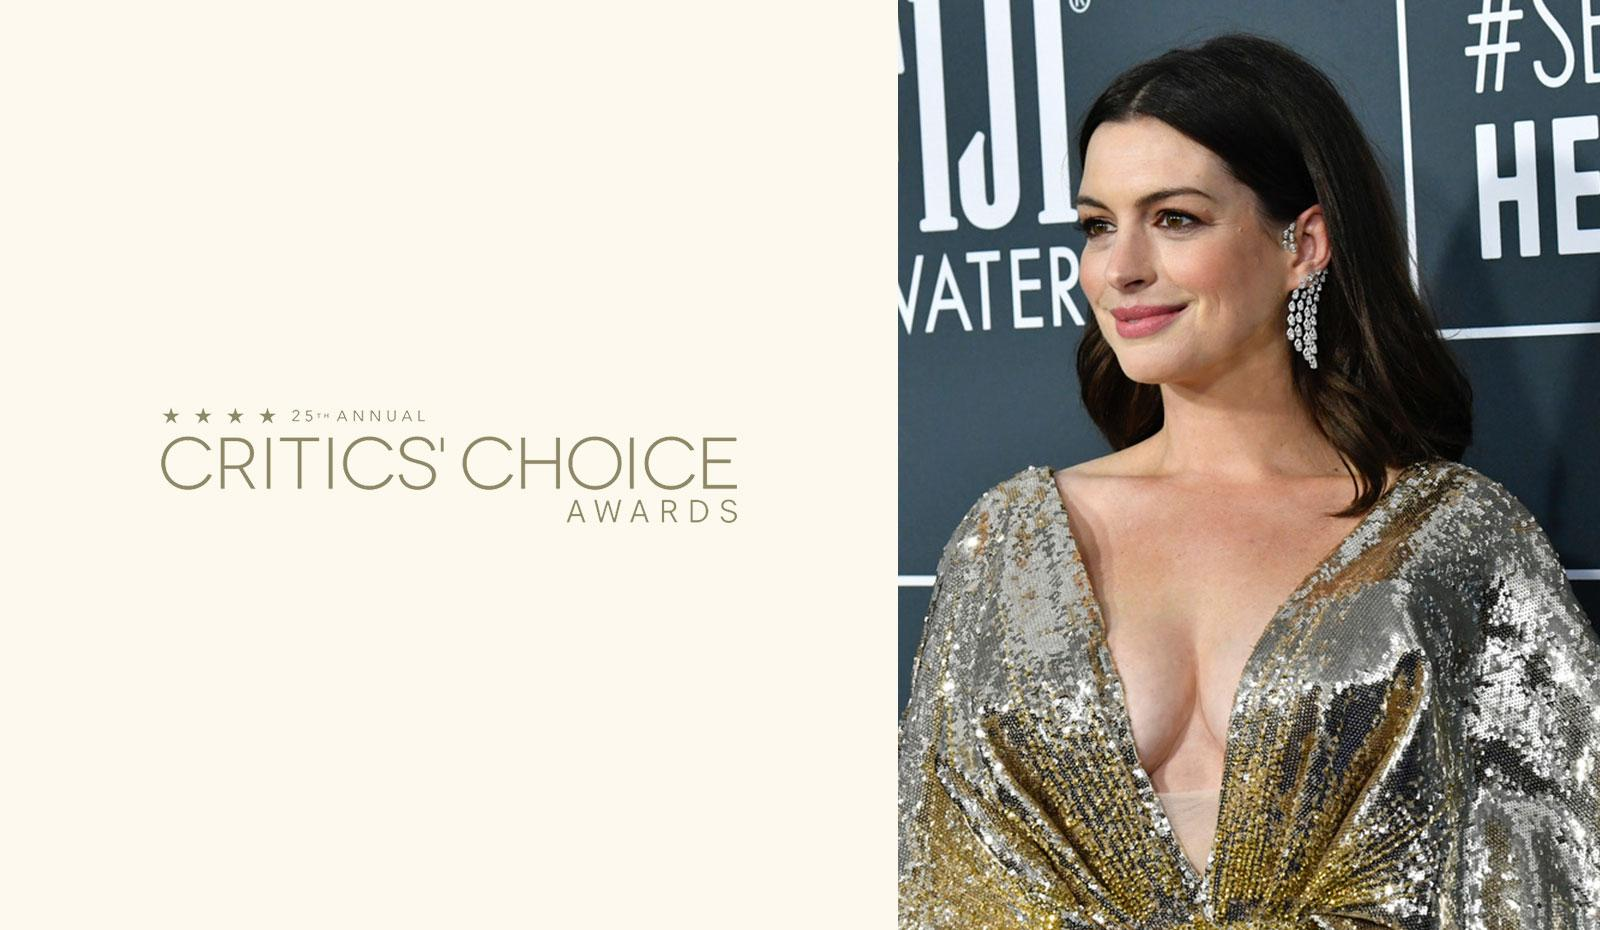 2020 Critic's Choice Awards: Anne Hathaway's Natural Waves